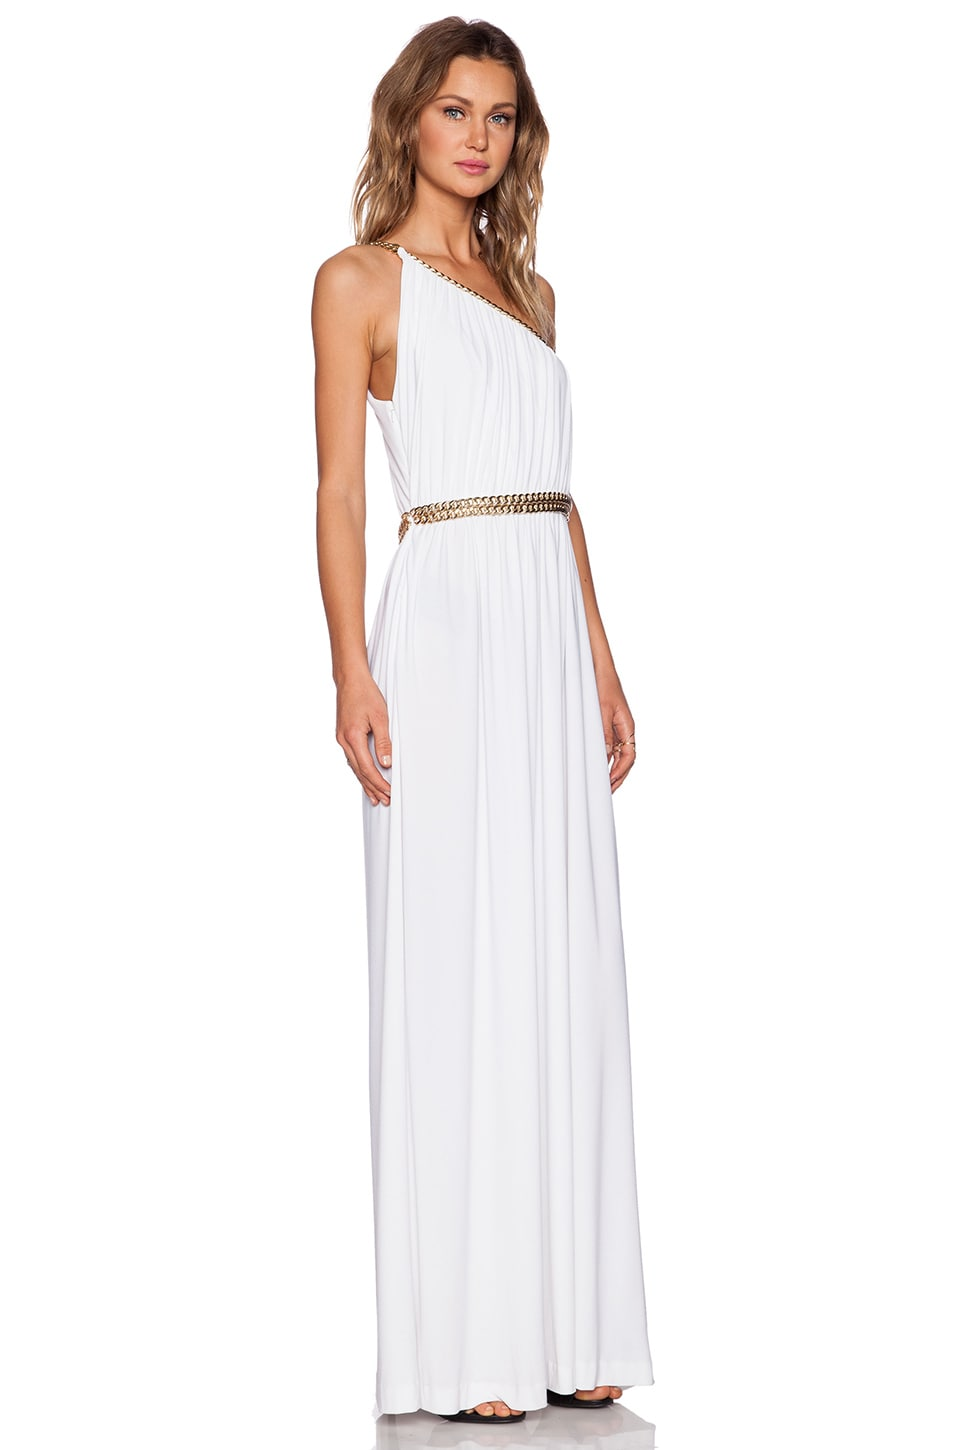 RACHEL ZOE Lillith Shirred Toga Maxi Dress in White - REVOLVE